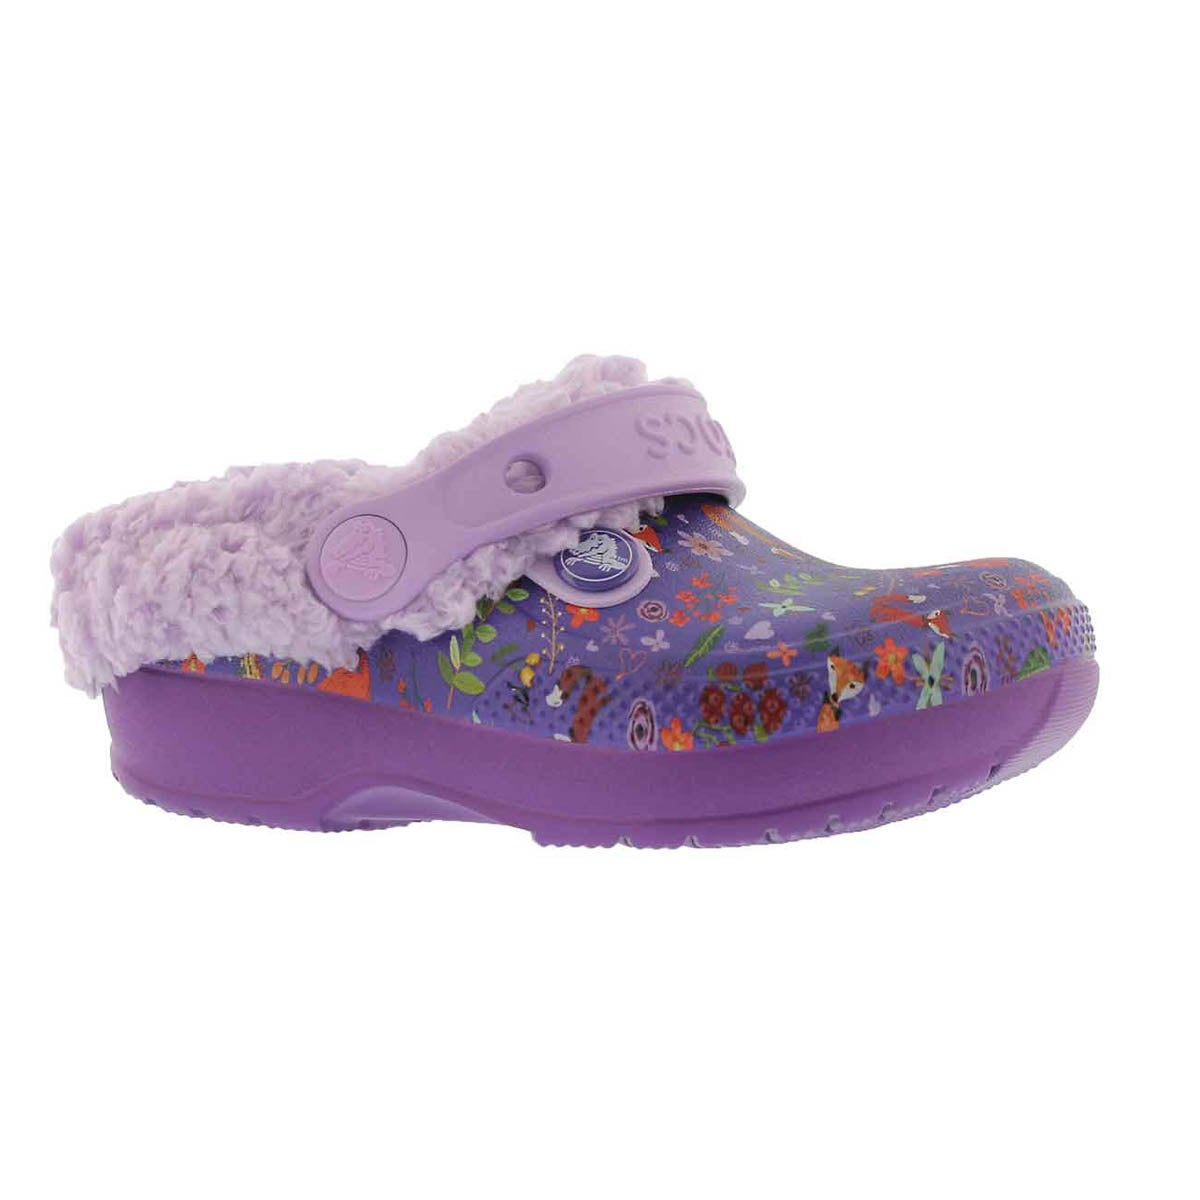 Girls' CLASSIC BLITZEN III GRAPHIC purple clogs